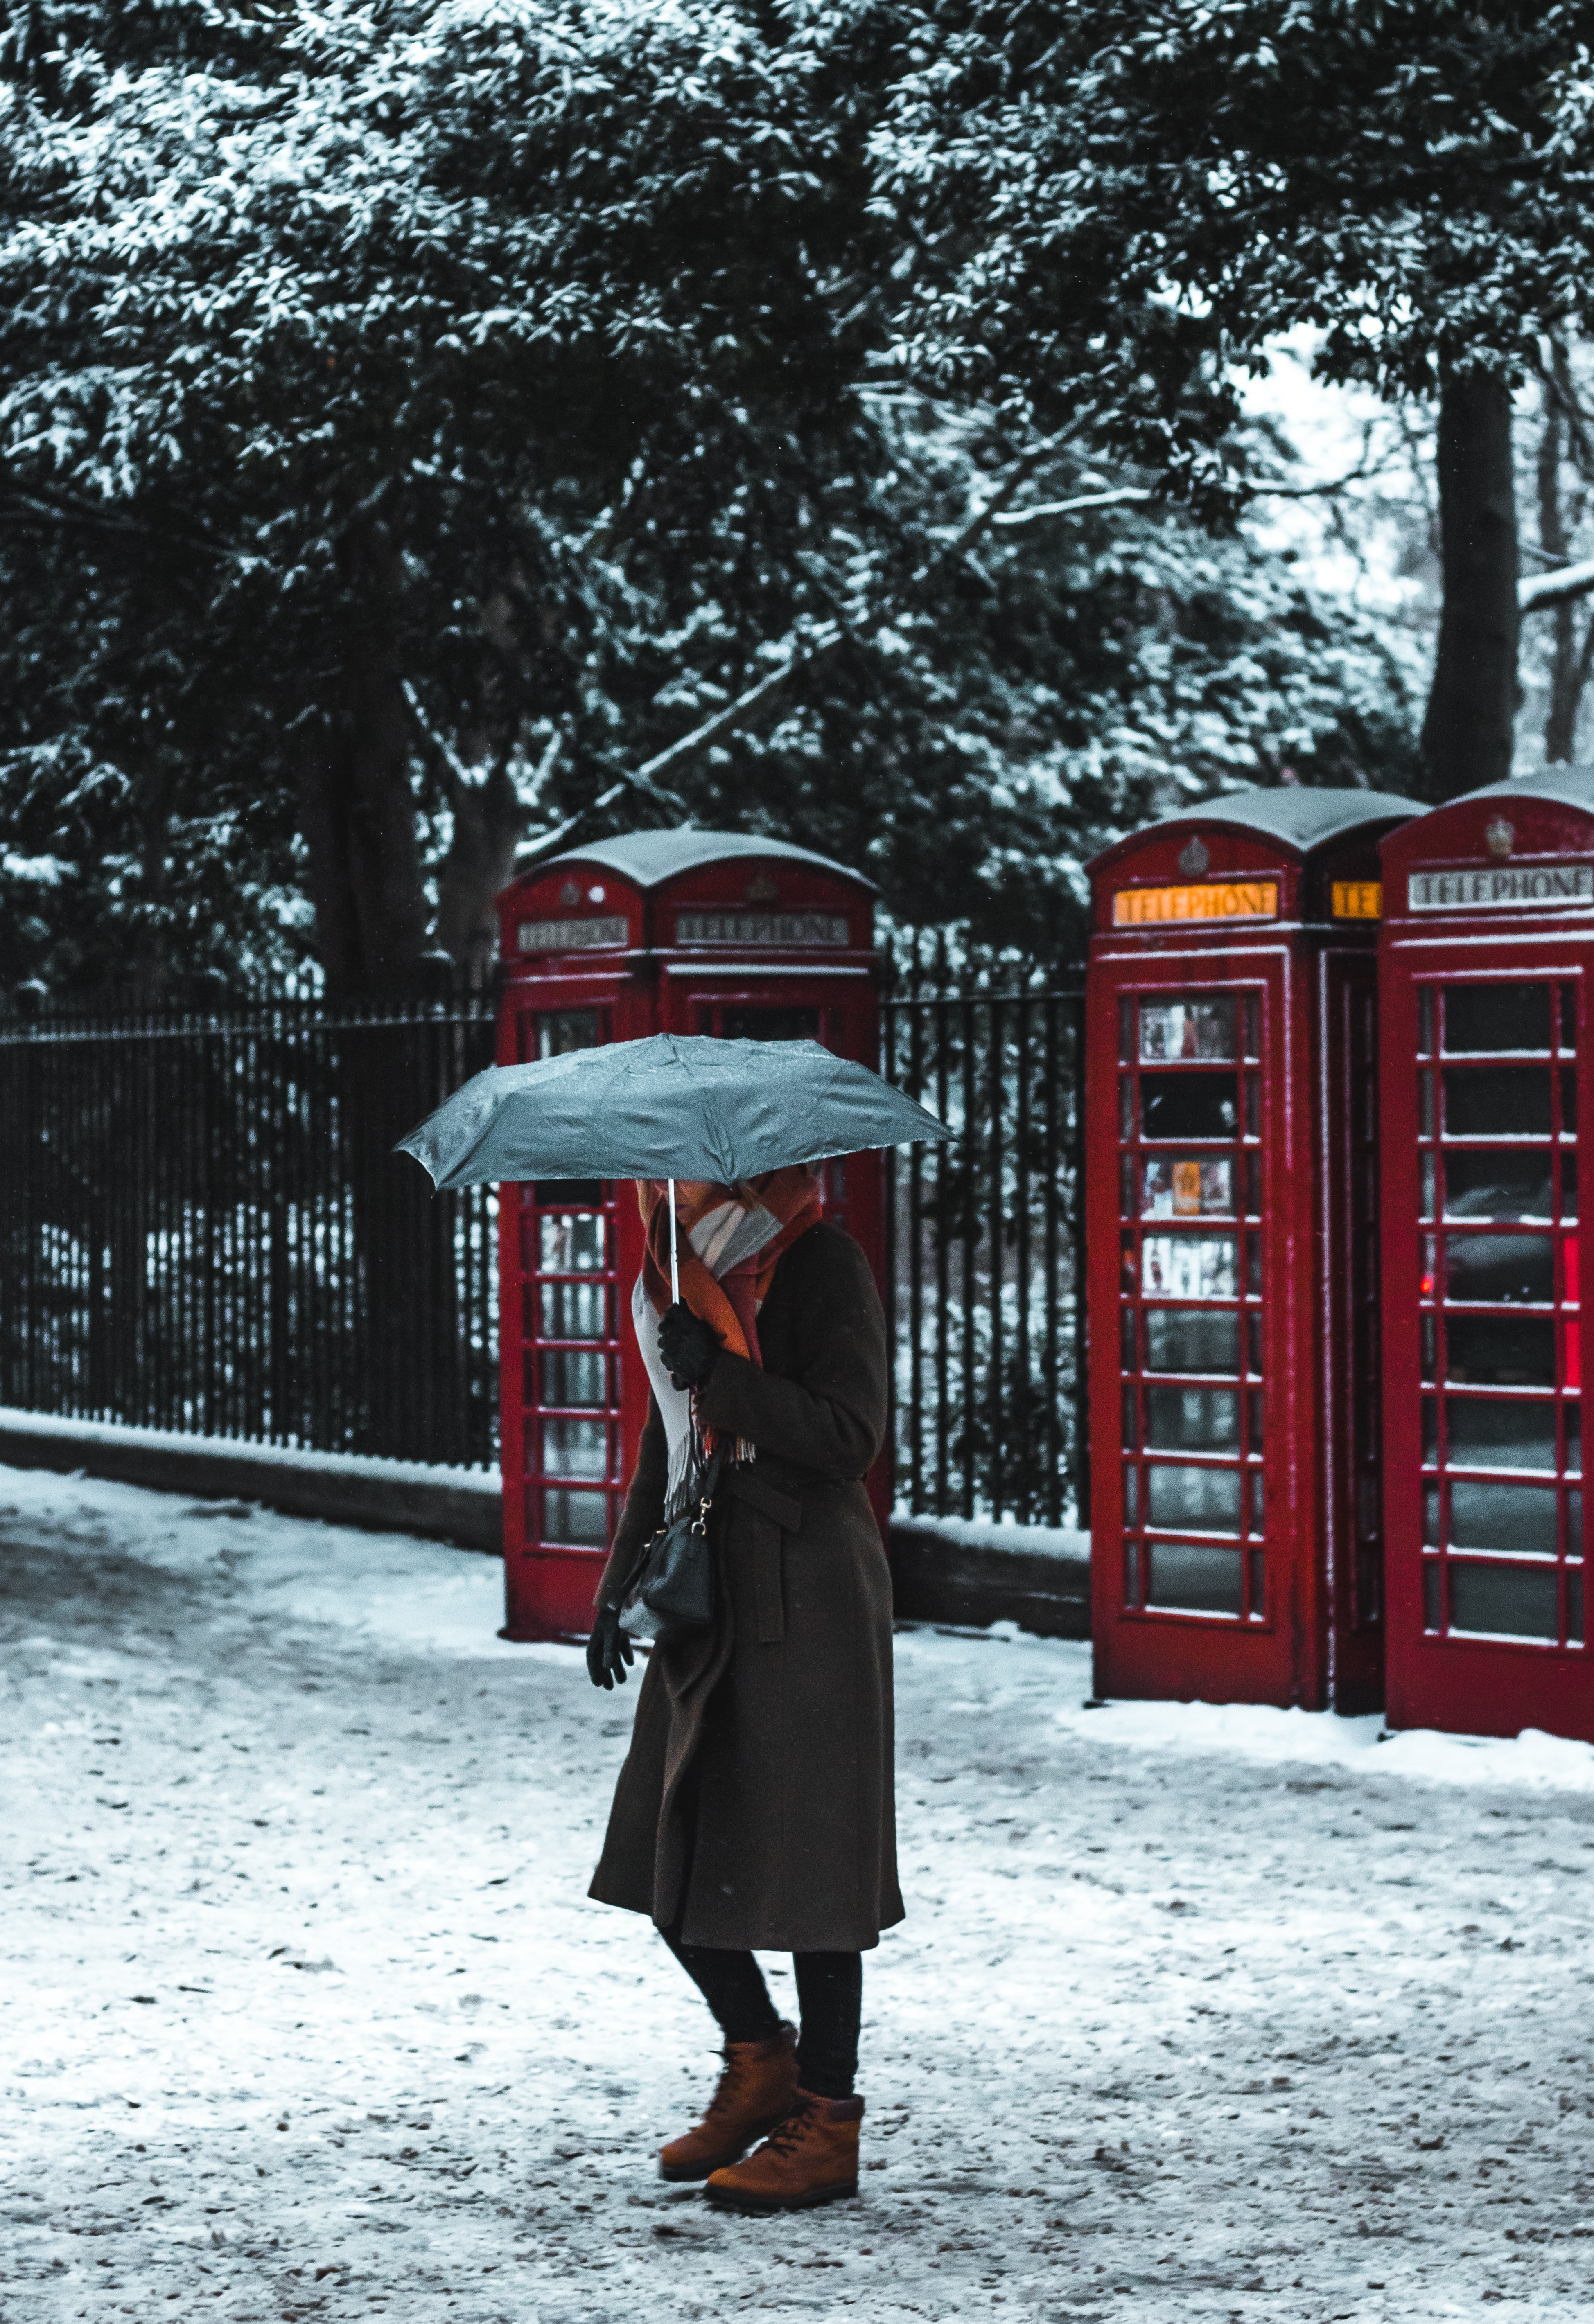 woman under umbrella near phone booth